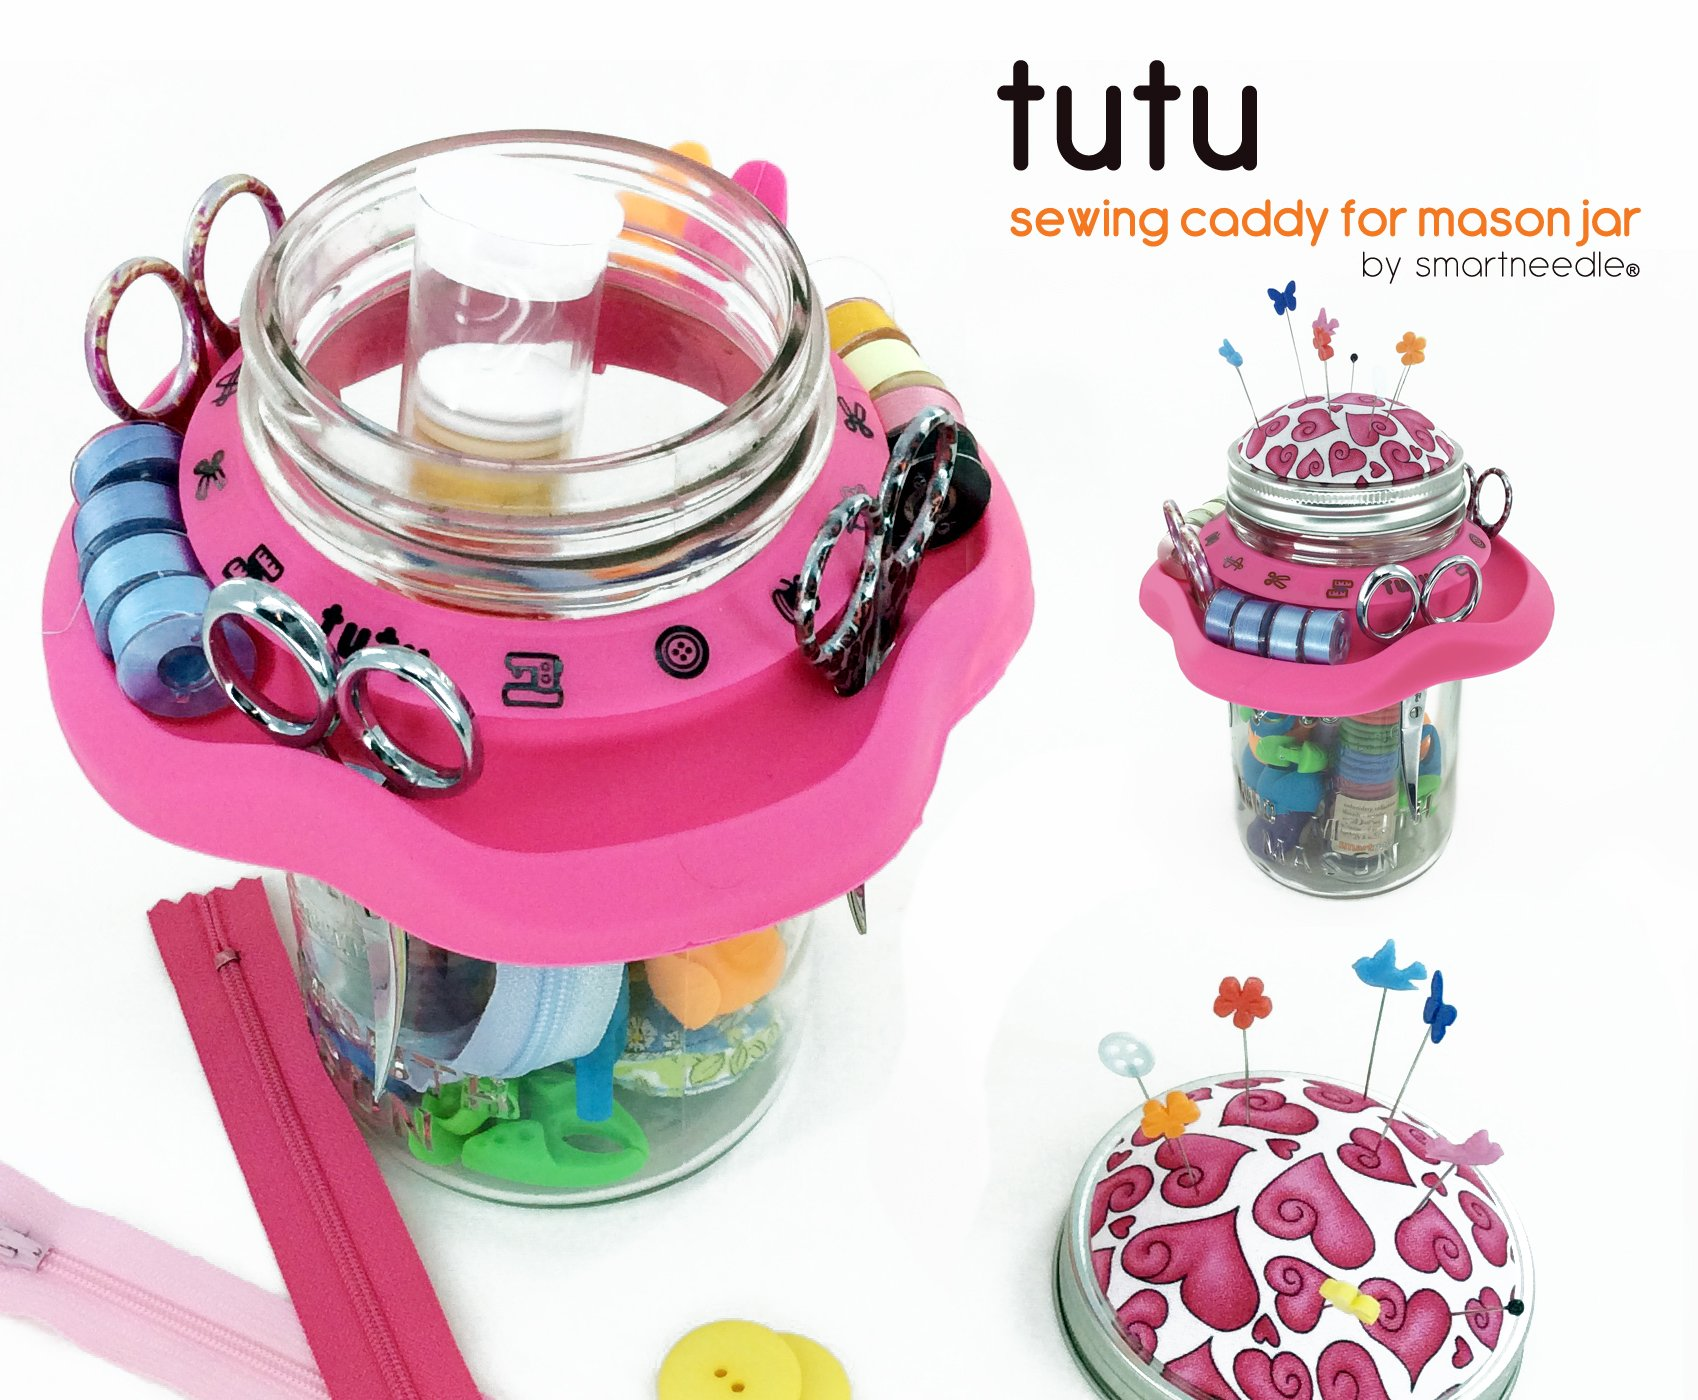 Tutu Creative Sewing Organizer | Turn a Mason Jar into a Beautiful Sewing Caddy - Use As Thread Bobbins and Scissors Holder | Includes a Pincushion | A Wonderful Gift for Every Art and Craft Lover by Smartneedle